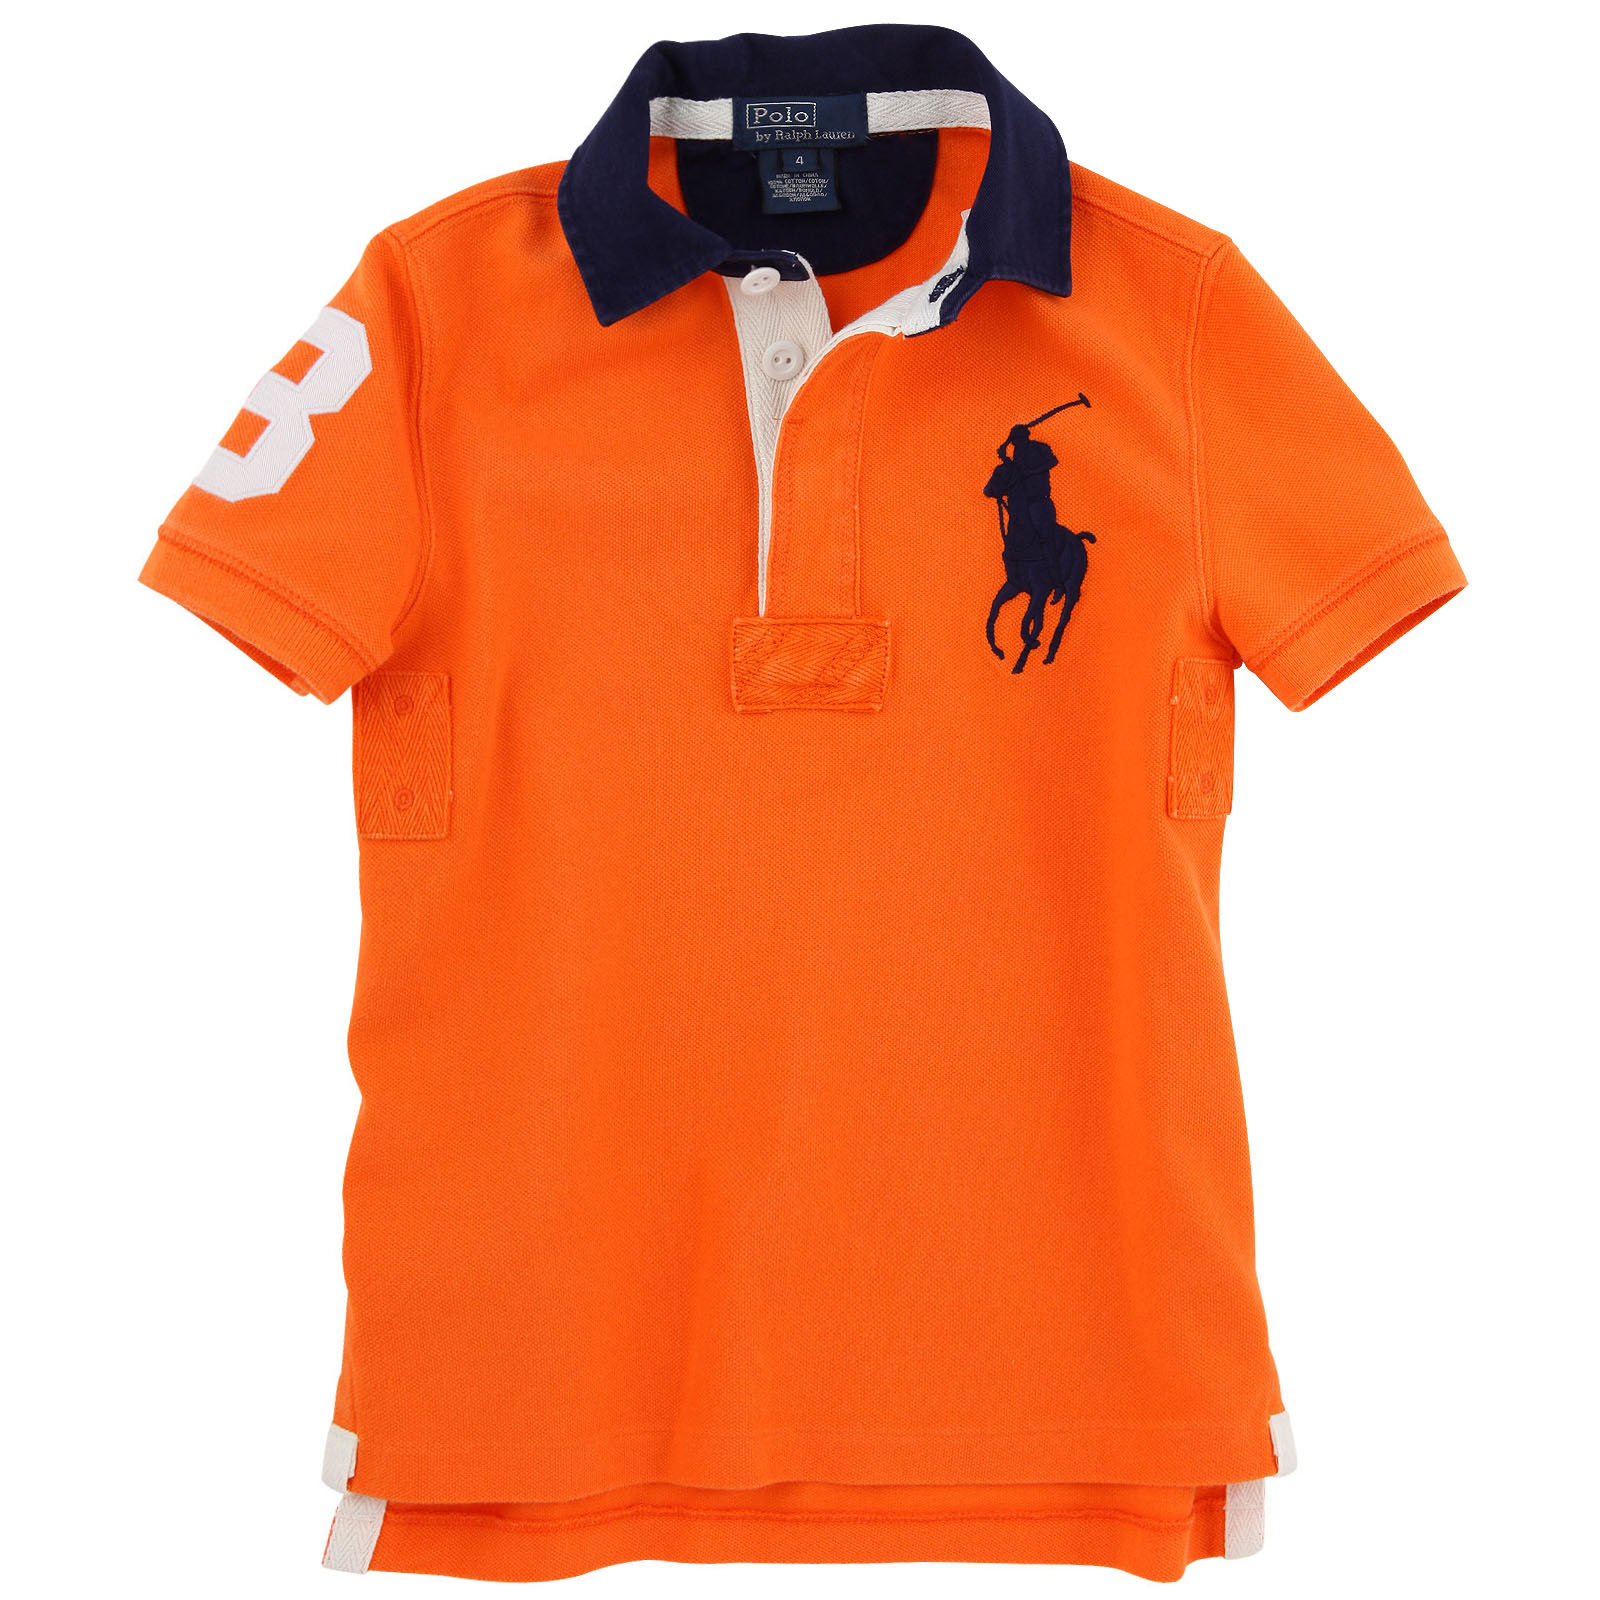 Shop polo shirts at Lands' End to find all the preppy classic men's polo shirts and men's polo t-shirts you need for year-round wear! Men's polos at Lands' End! skip to content skip to navigation skip to search. Men's Polo Shirts {{resultHeading}} sign up. Get exclusive Offers and News.